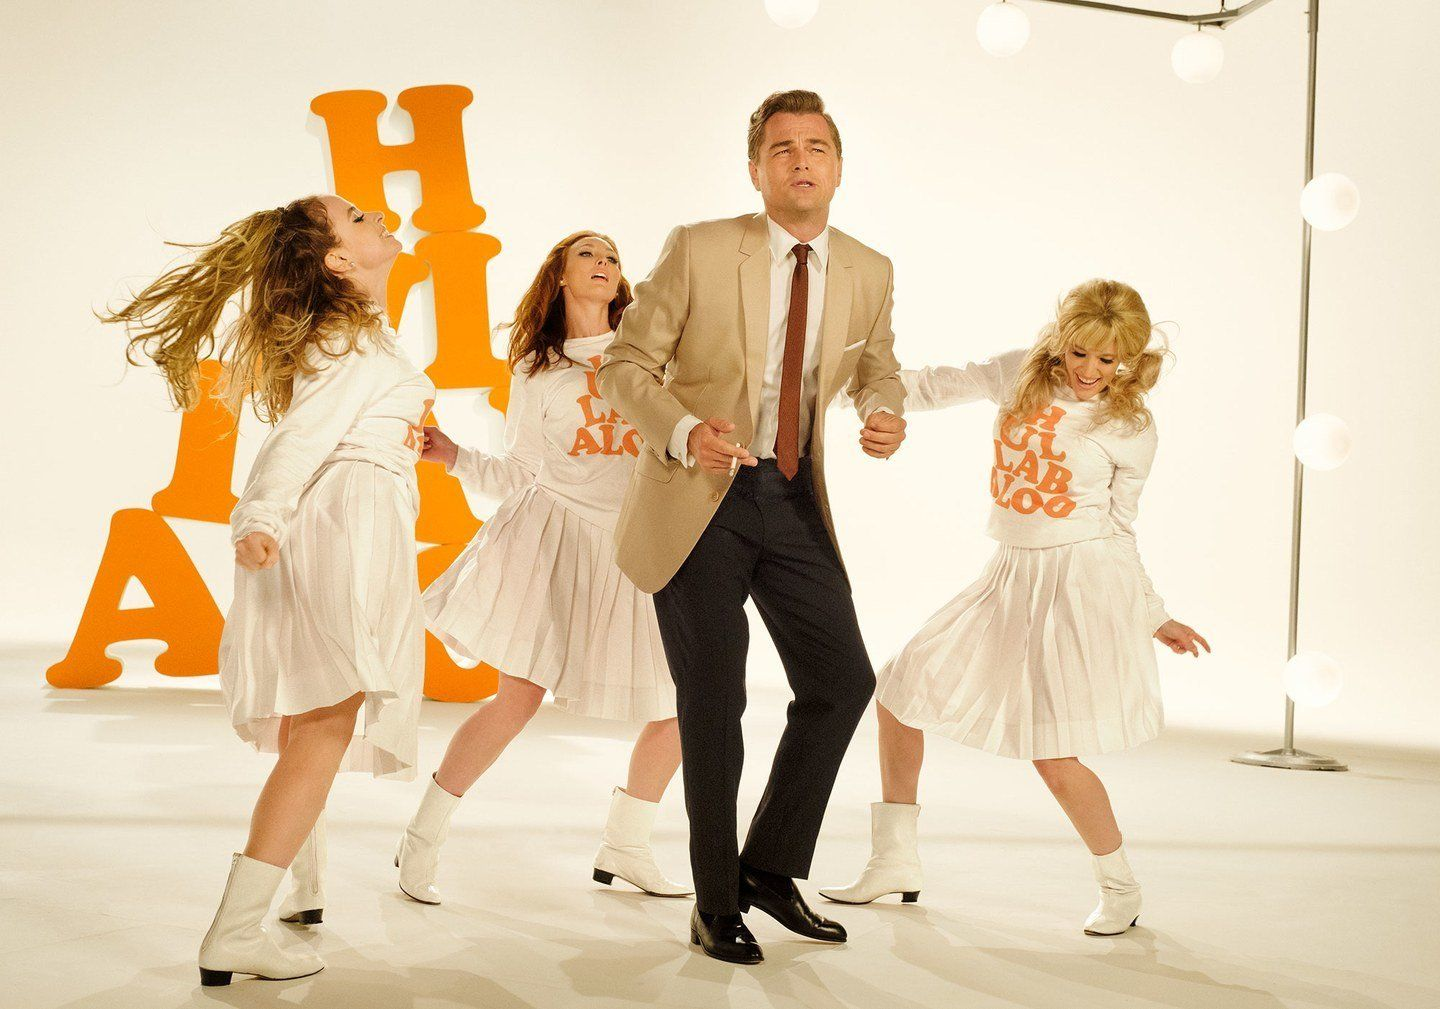 'Once Upon A Time In Hollywood' Trailer Is A '60s Fever Dream With DiCaprio